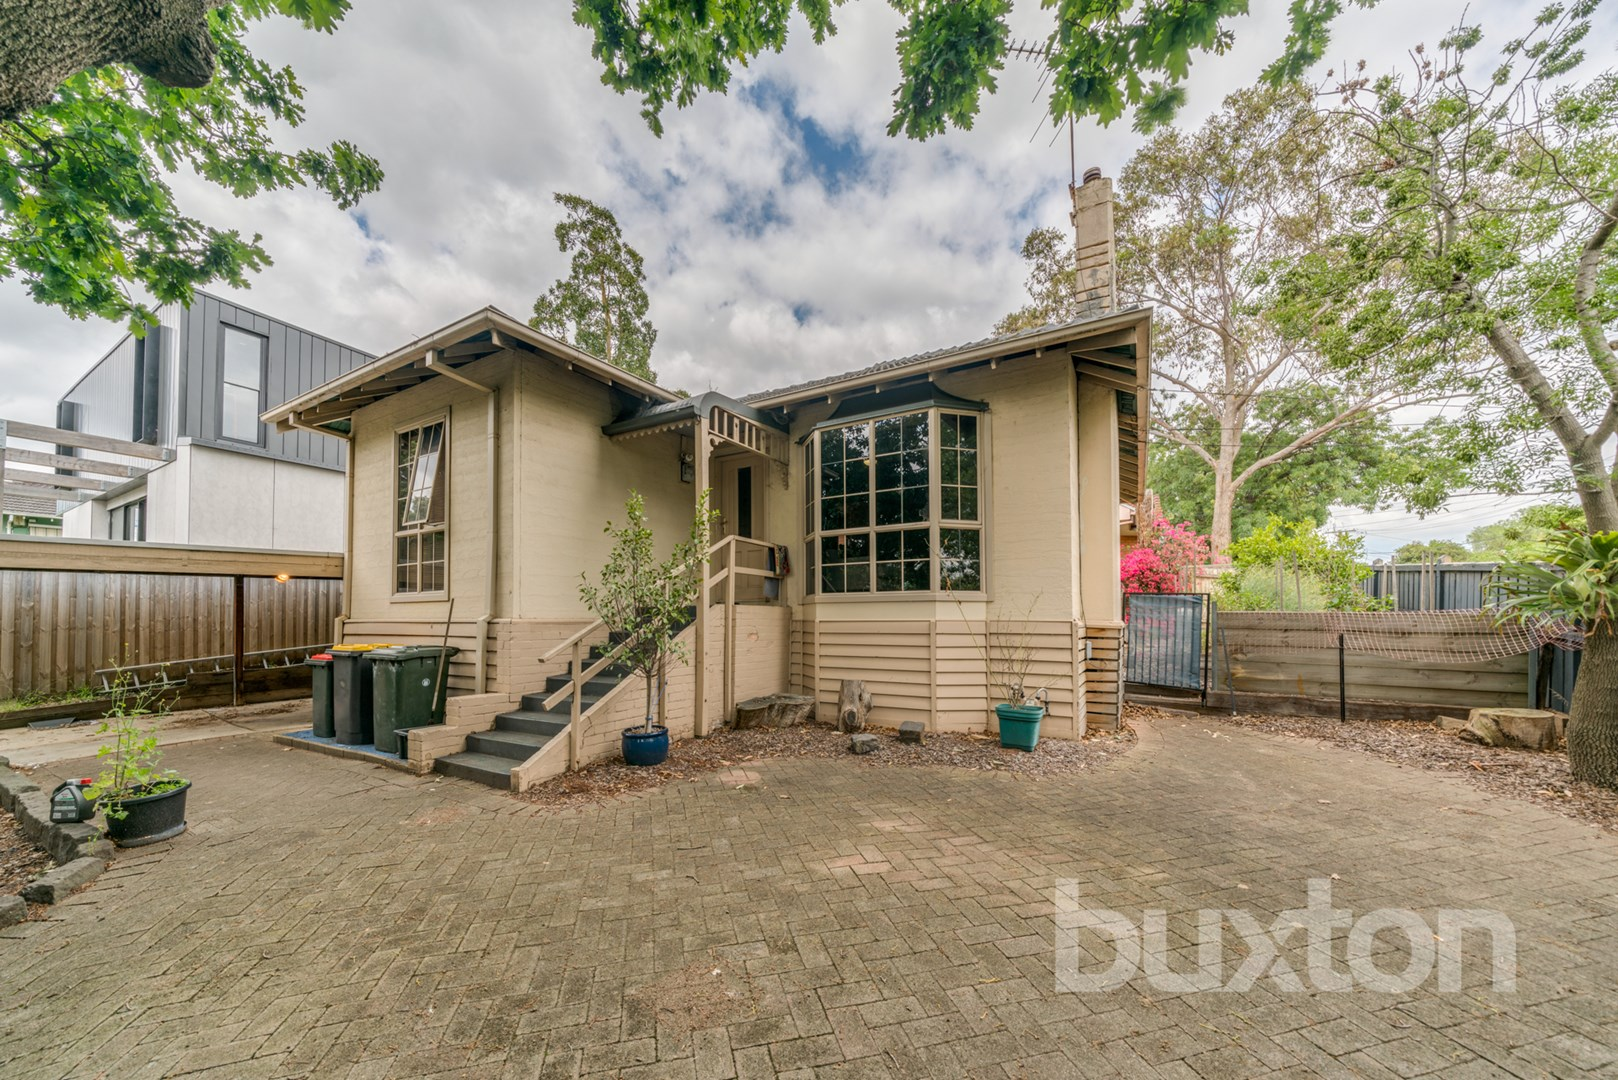 1/100 Power Avenue, Chadstone VIC 3148, Image 0